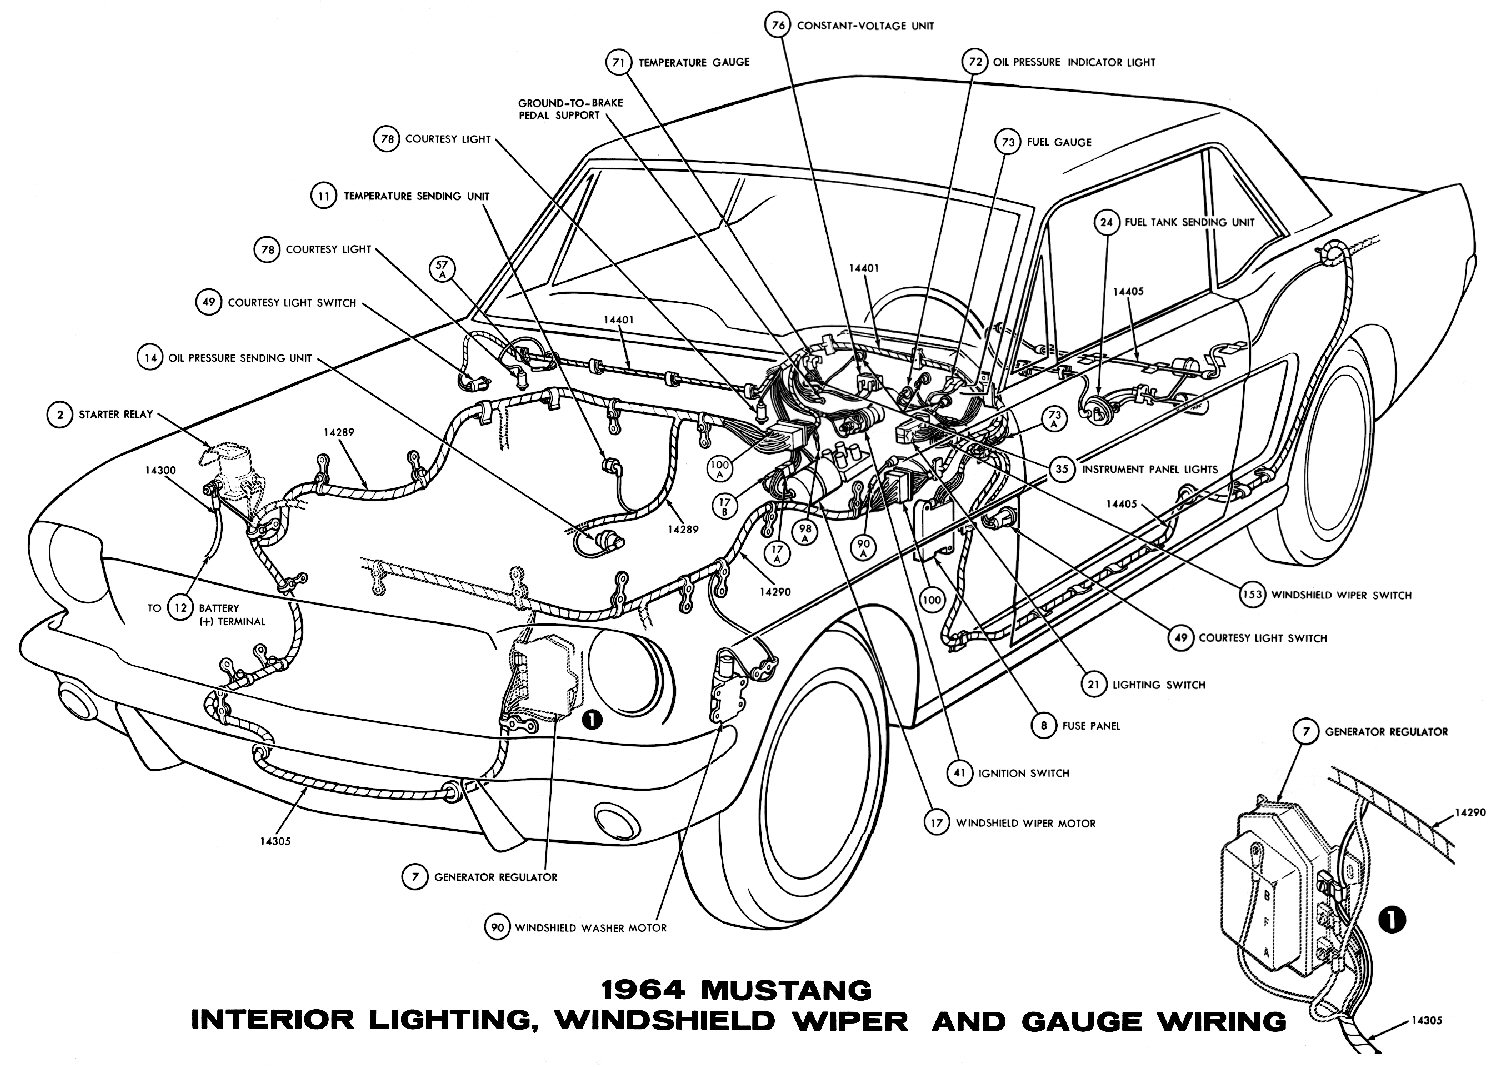 temperature gauge wiring diagram wiring diagram Pro Tach Wiring Diagram 1964 mustang wiring diagrams average joe restorationtemperature gauge wiring diagram 19